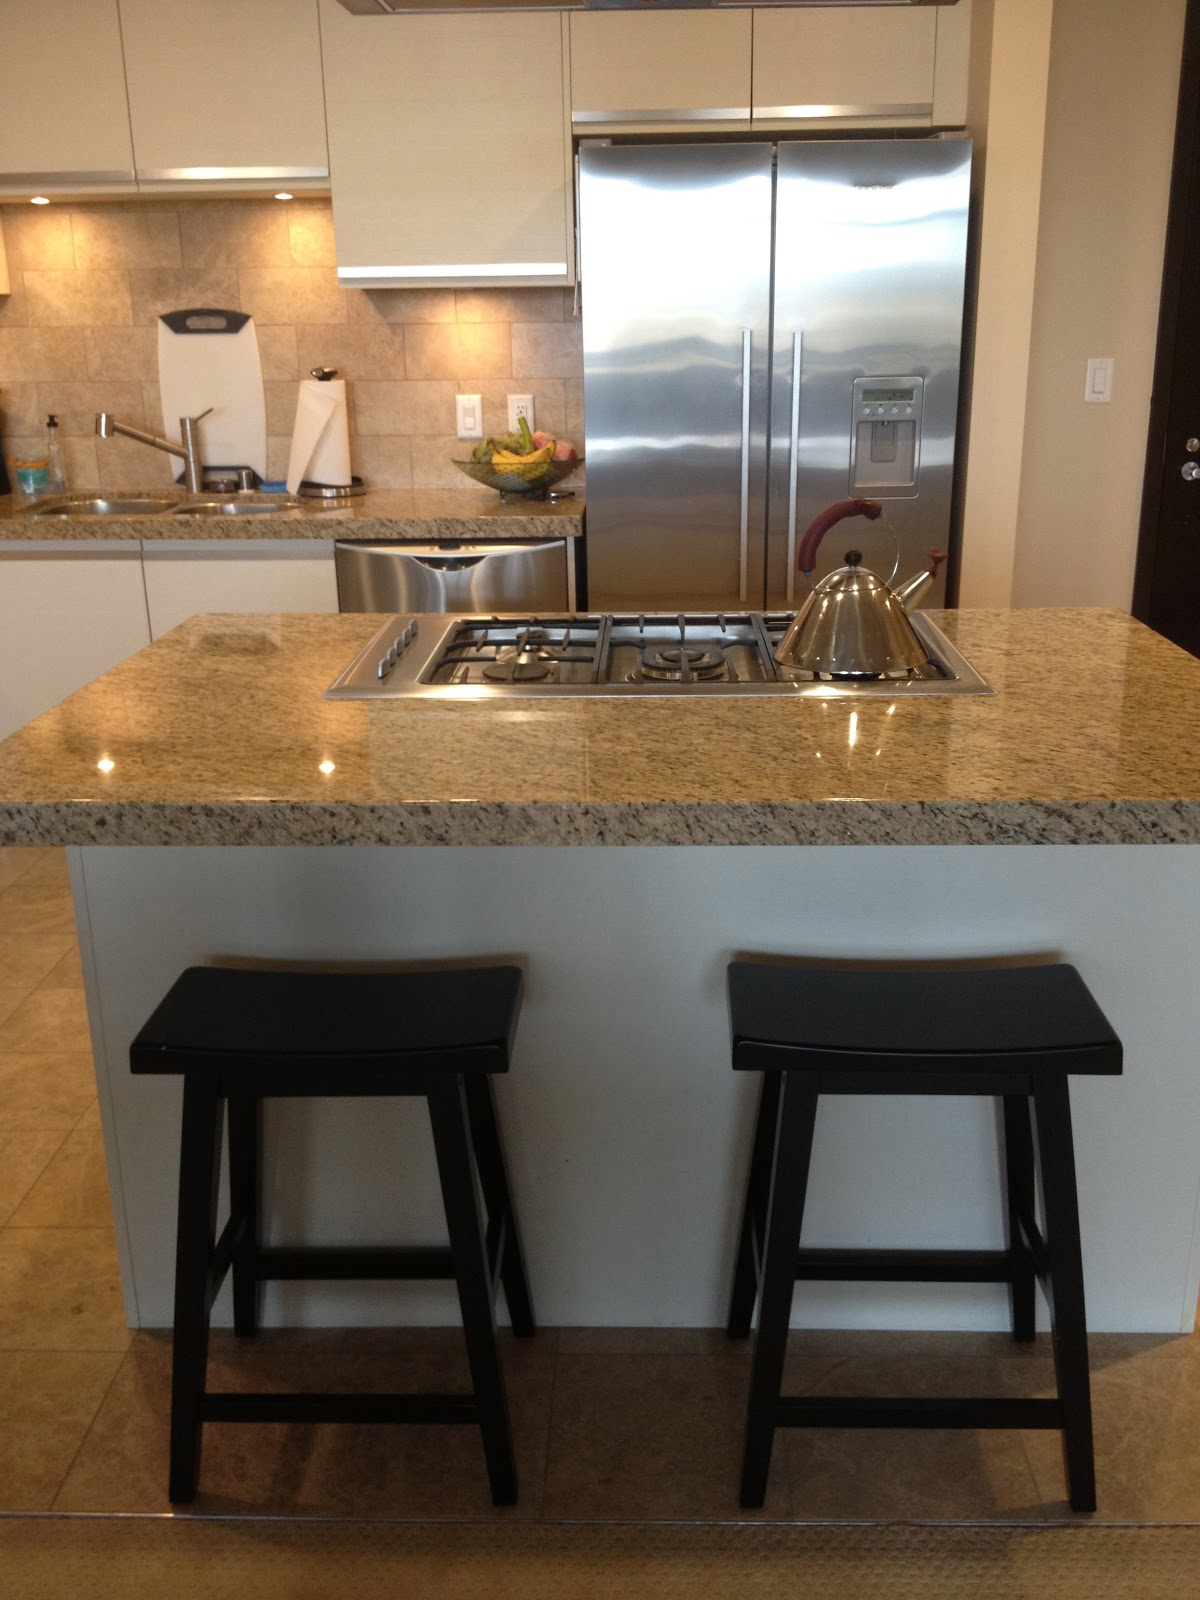 Craigslist Kitchen Island Simple Decorgreat Tips For Selling On